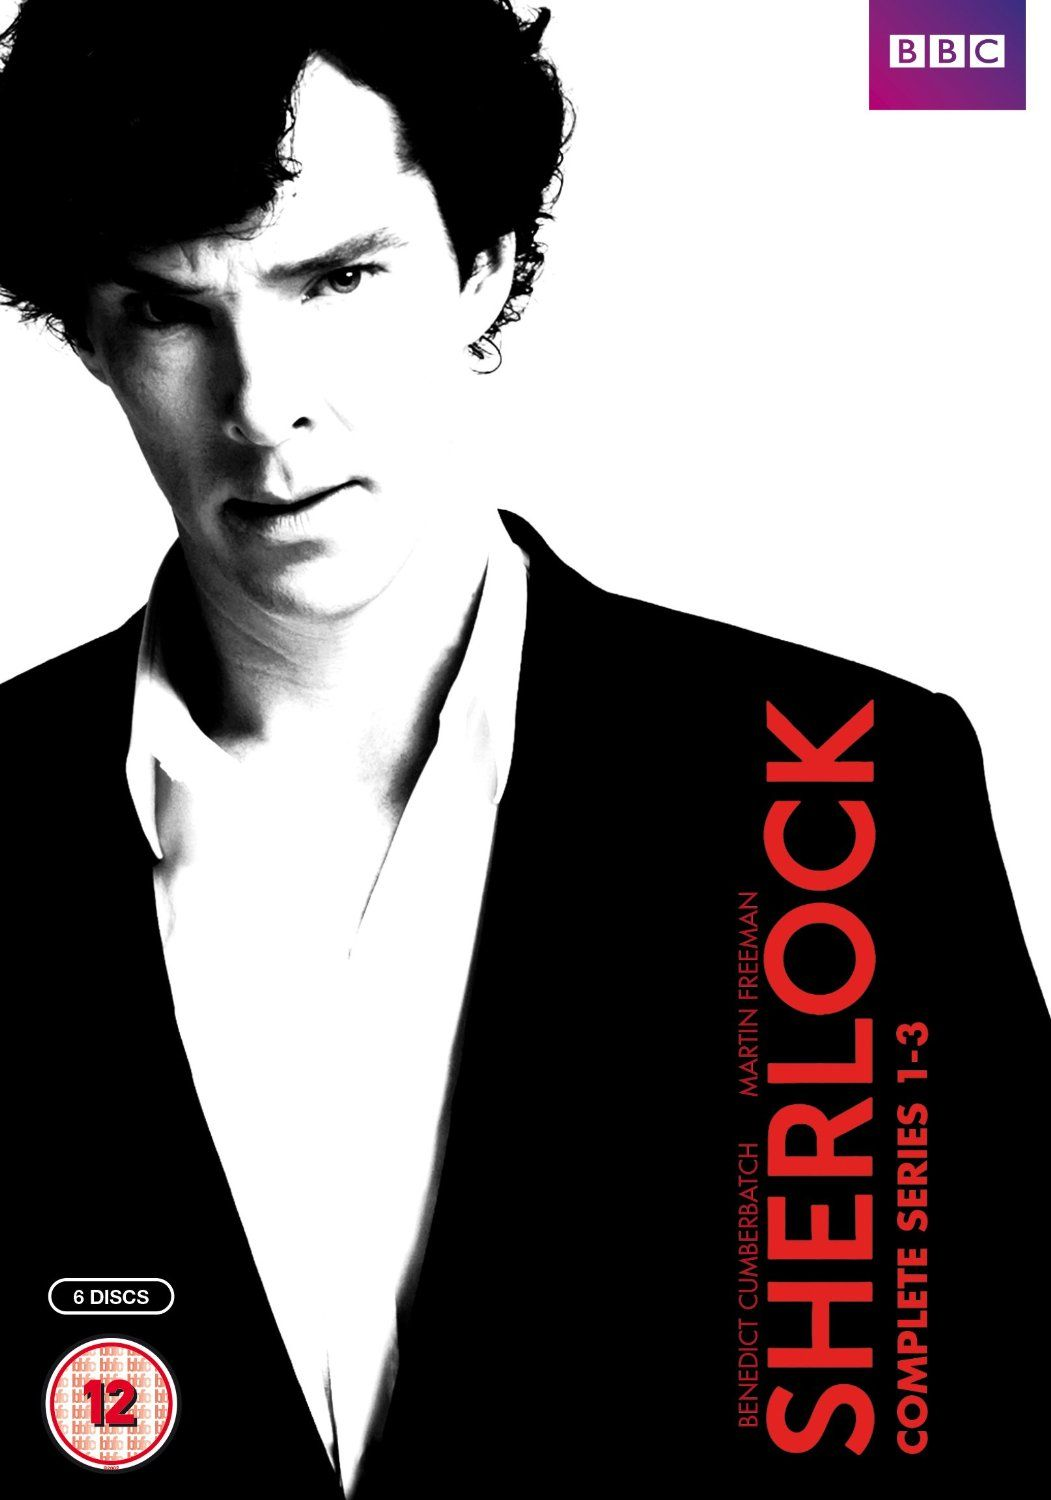 Amazon.it | Sherlock - Series 1-3 Box Set [Edizione: Regno Unito]: Acquista in DVD e Blu ray